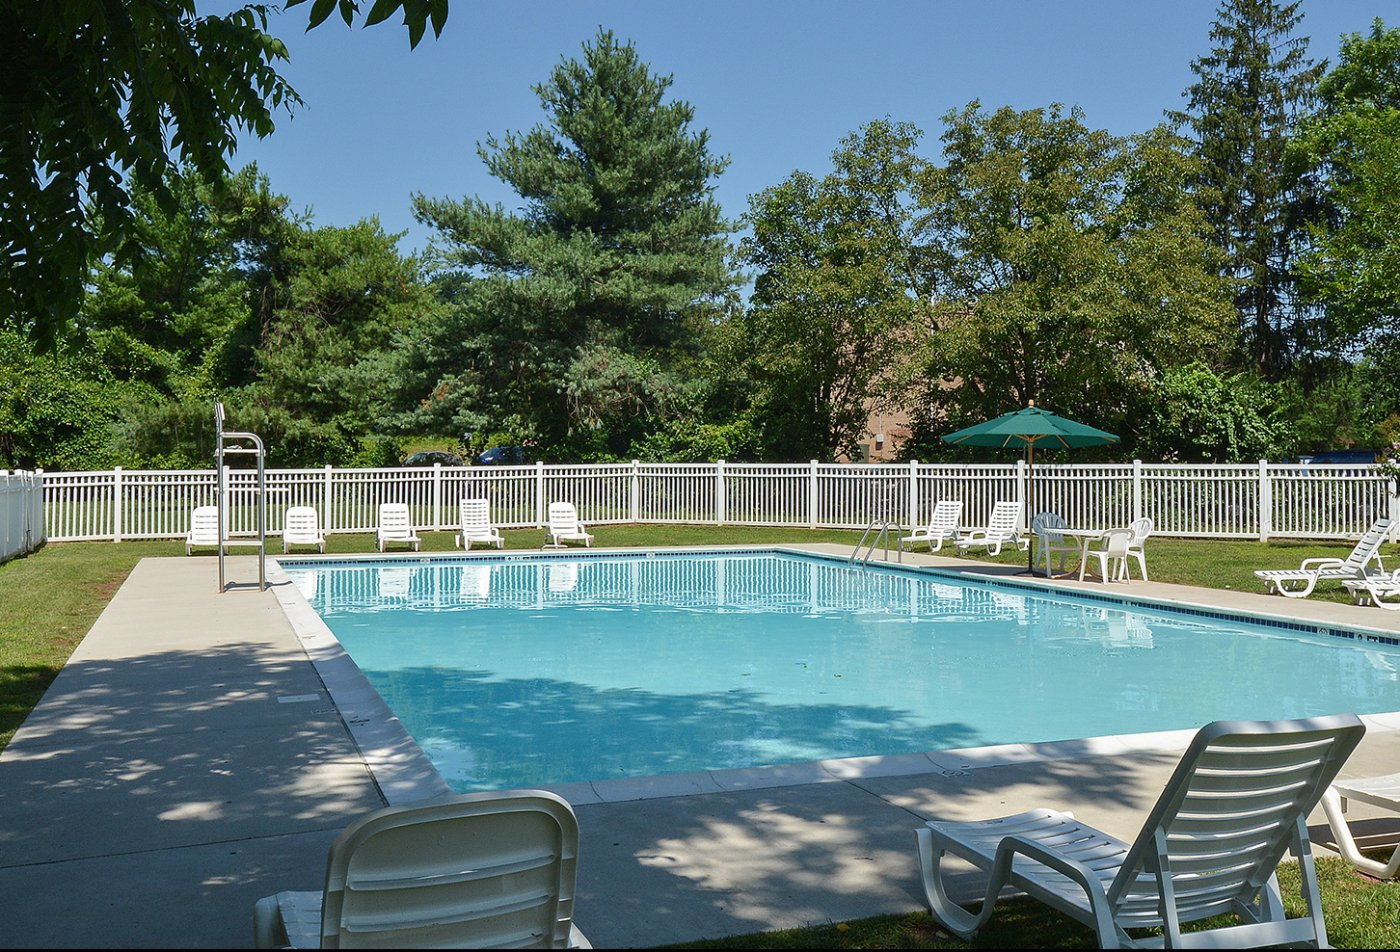 Swimming Pool | Apartment Homes in Claymont, DE | Naamans Village Apartments